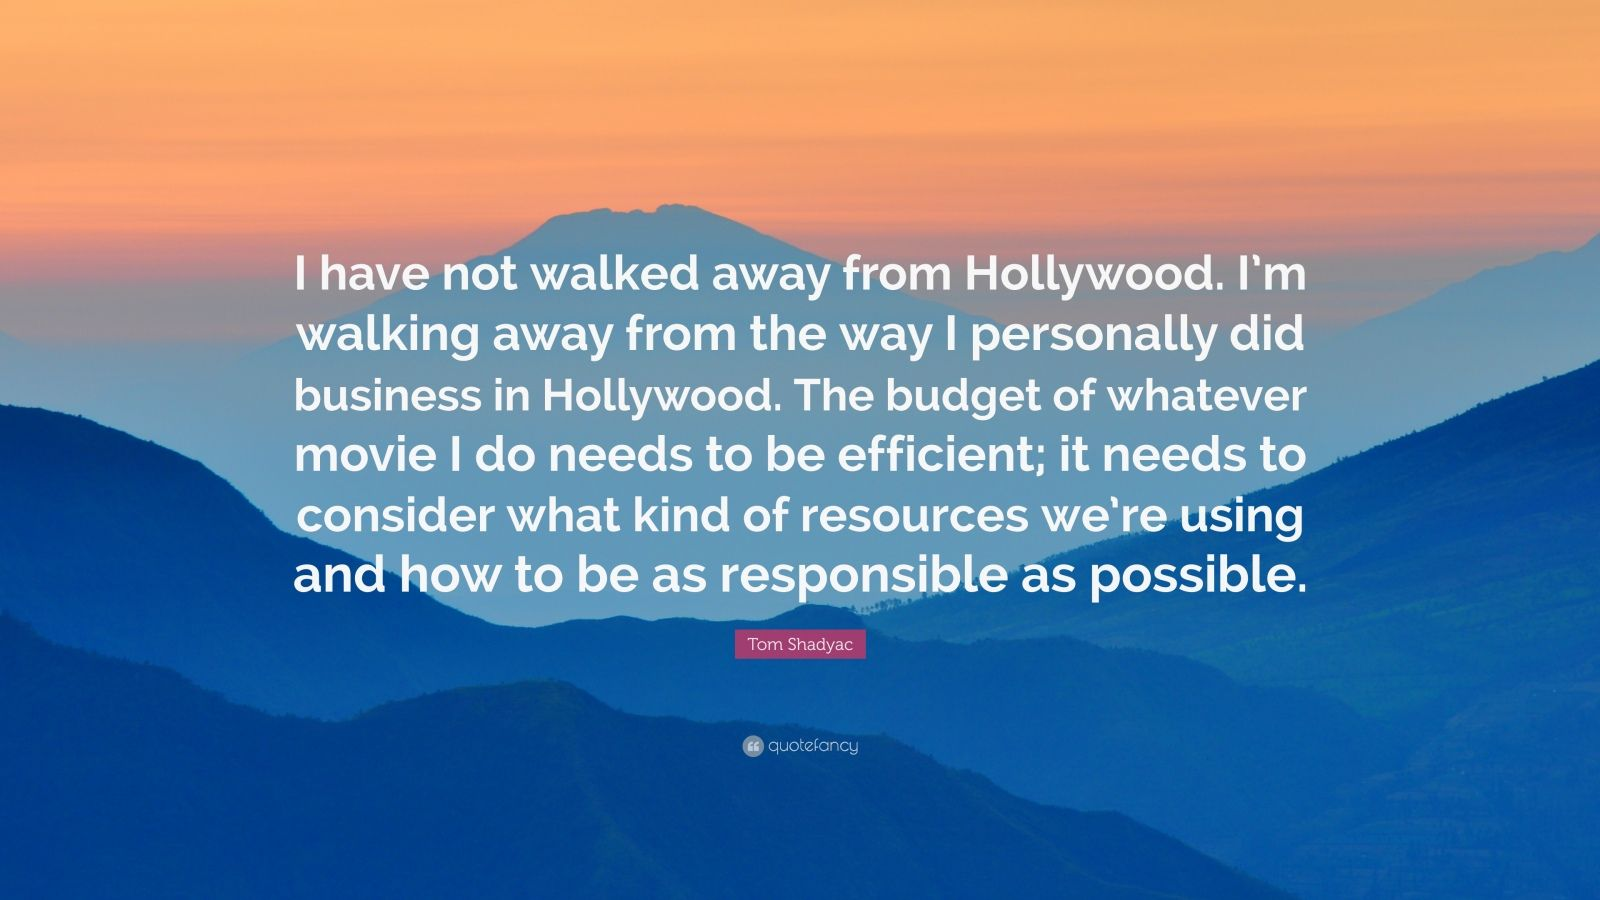 """Tom Shadyac Quote: """"I have not walked away from Hollywood. I'm walking away from the way I personally did business in Hollywood. The budget of whatever movie I do needs to be efficient; it needs to consider what kind of resources we're using and how to be as responsible as possible."""""""